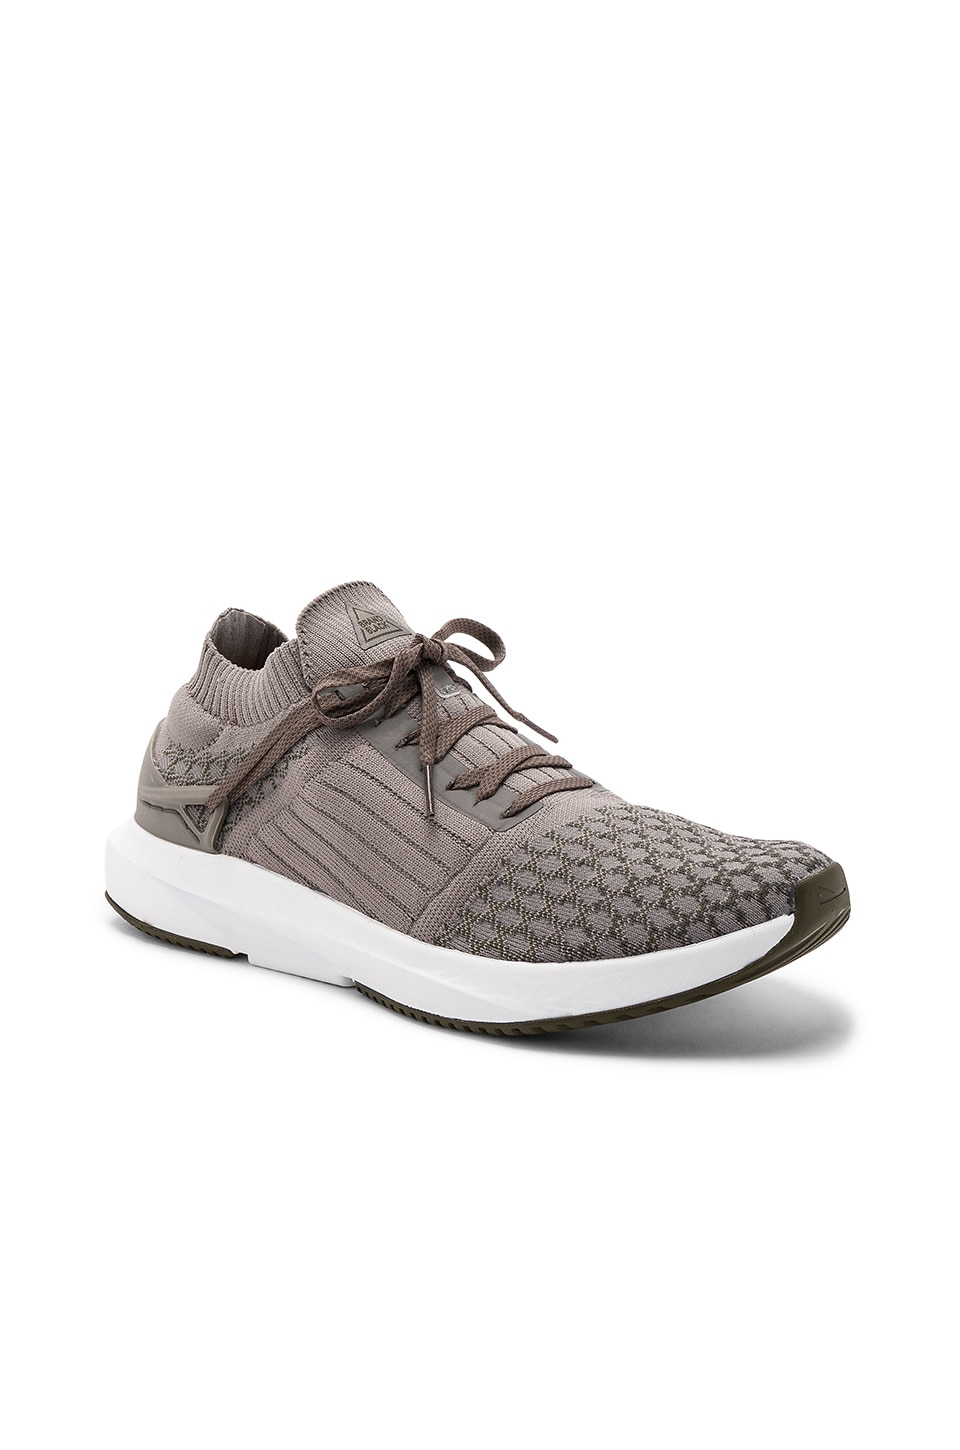 Brandblack Viento in Grey